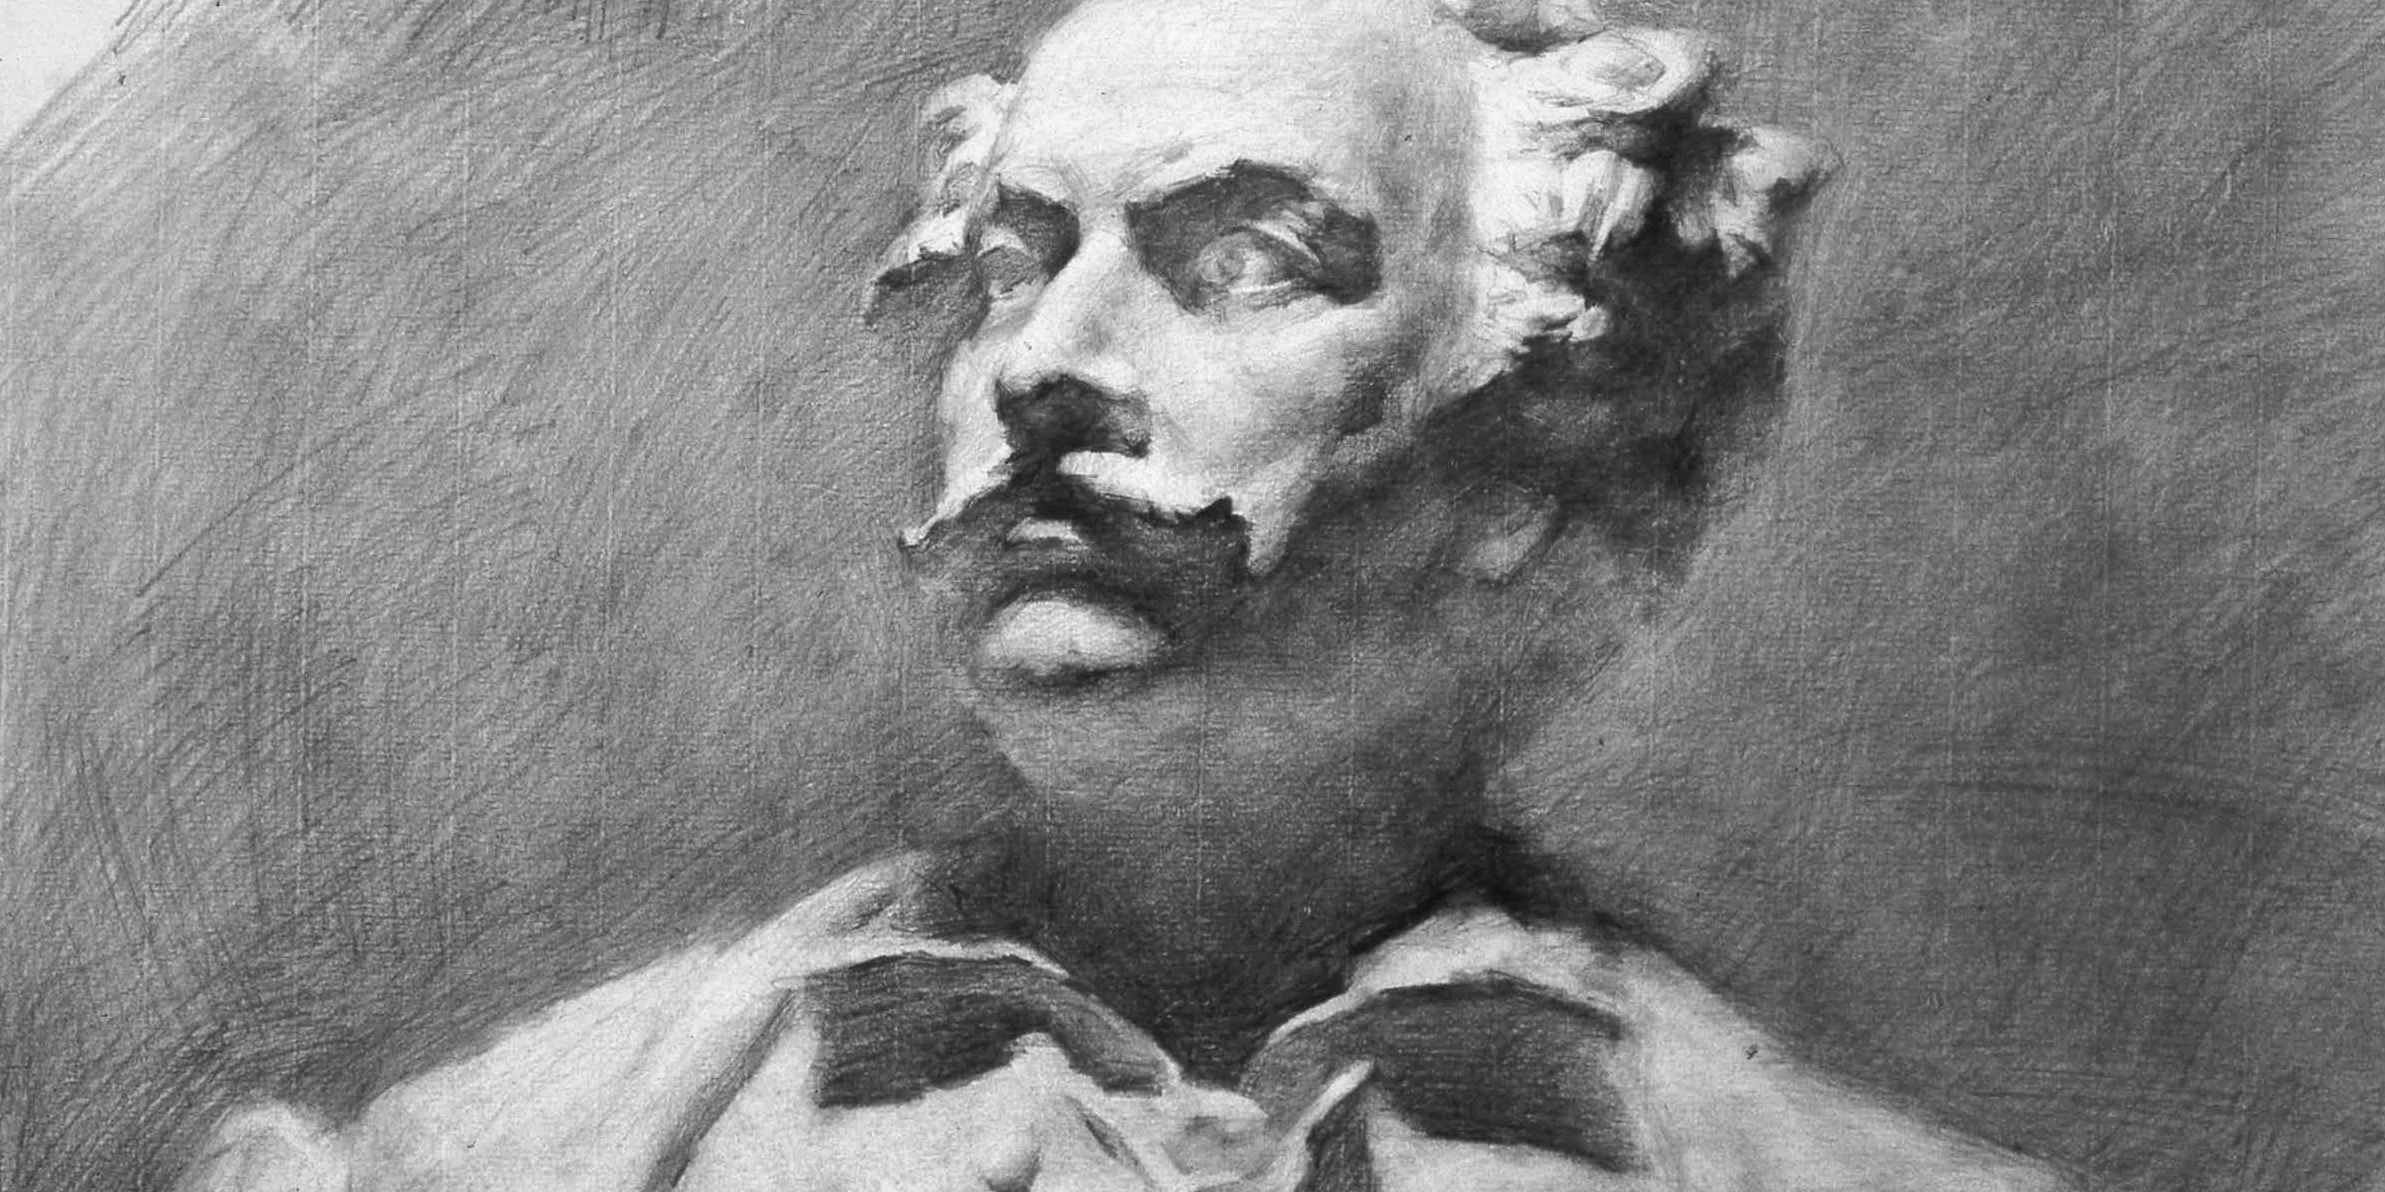 Why did I spend 48 hours on a classical bust study – the role of classical bust study in drawing